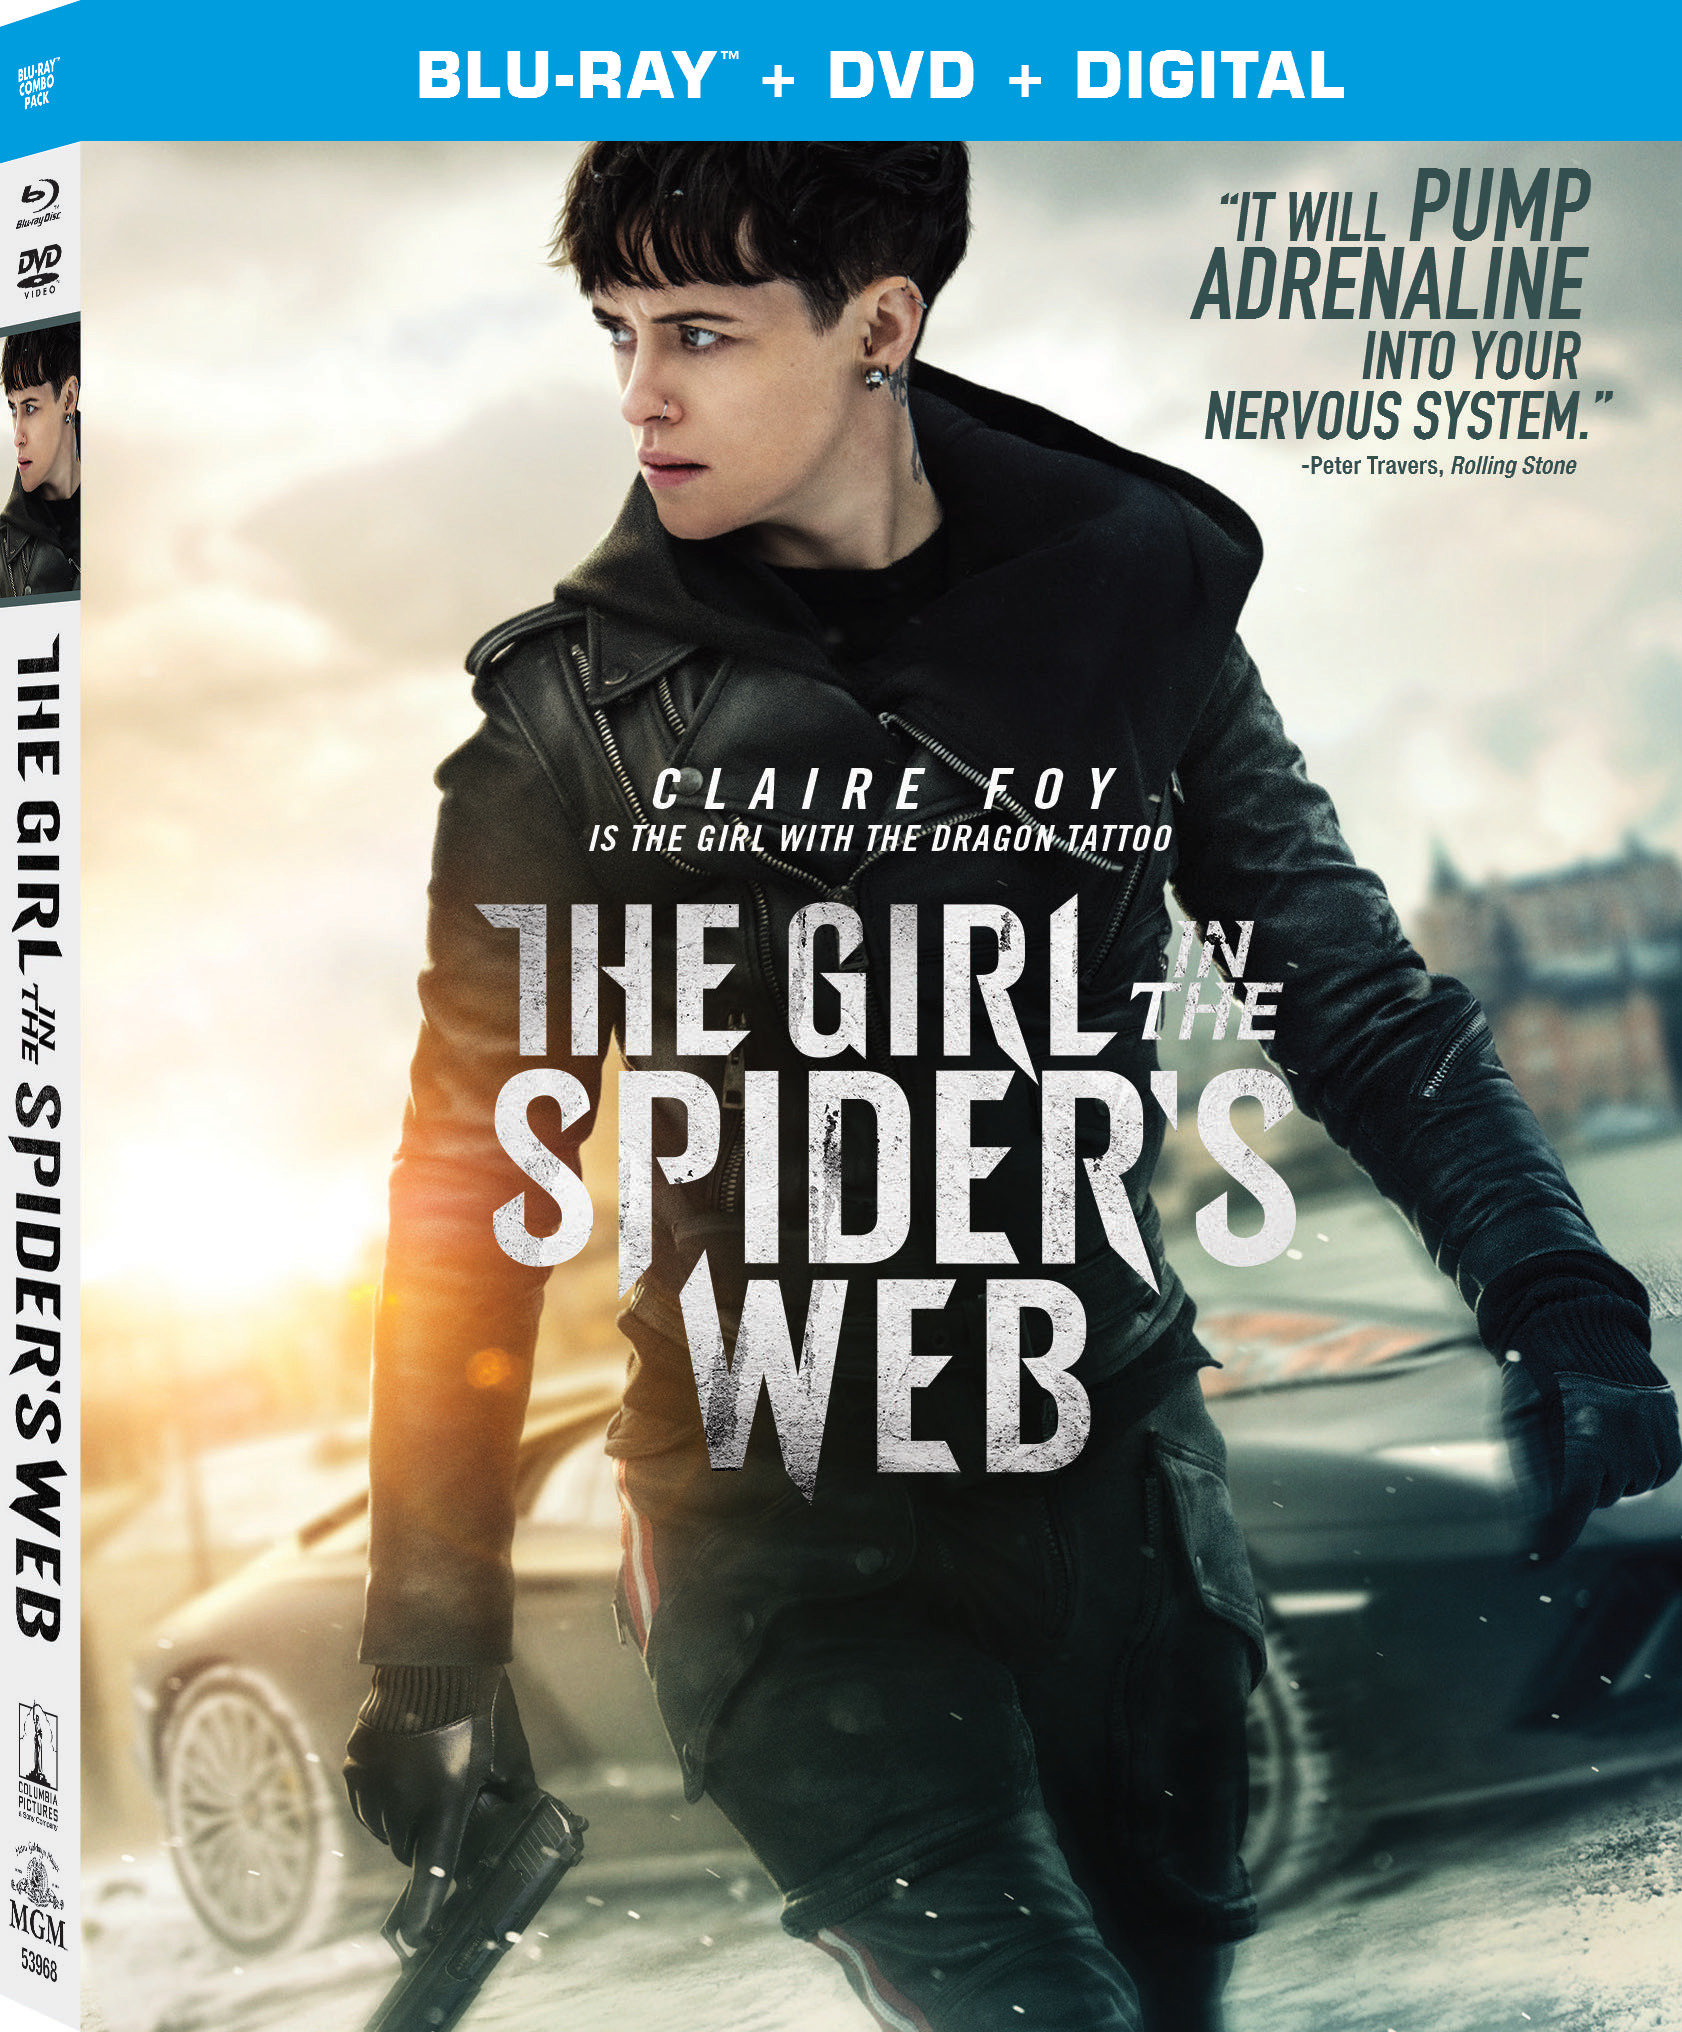 ENTER TO WIN THE GIRL IN THE SPIDER'S WEB ON BLU-RAY!